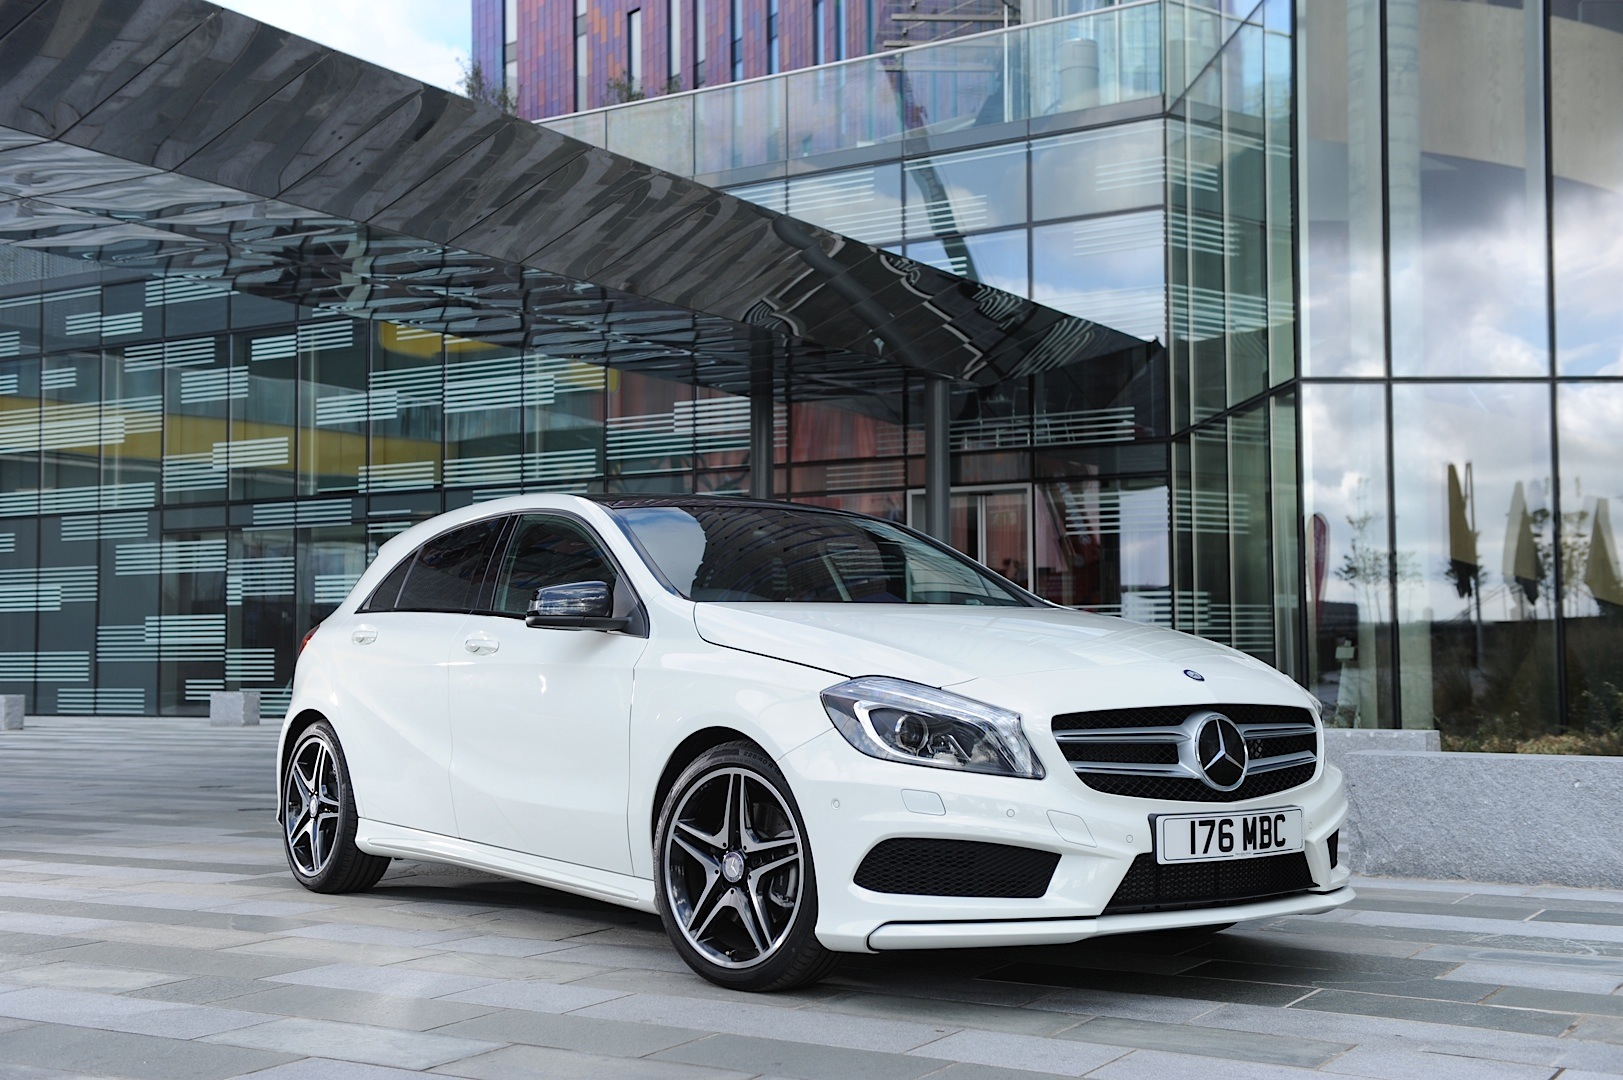 Mercedes Benz Uk Reports Best Ever Registrations In 2013